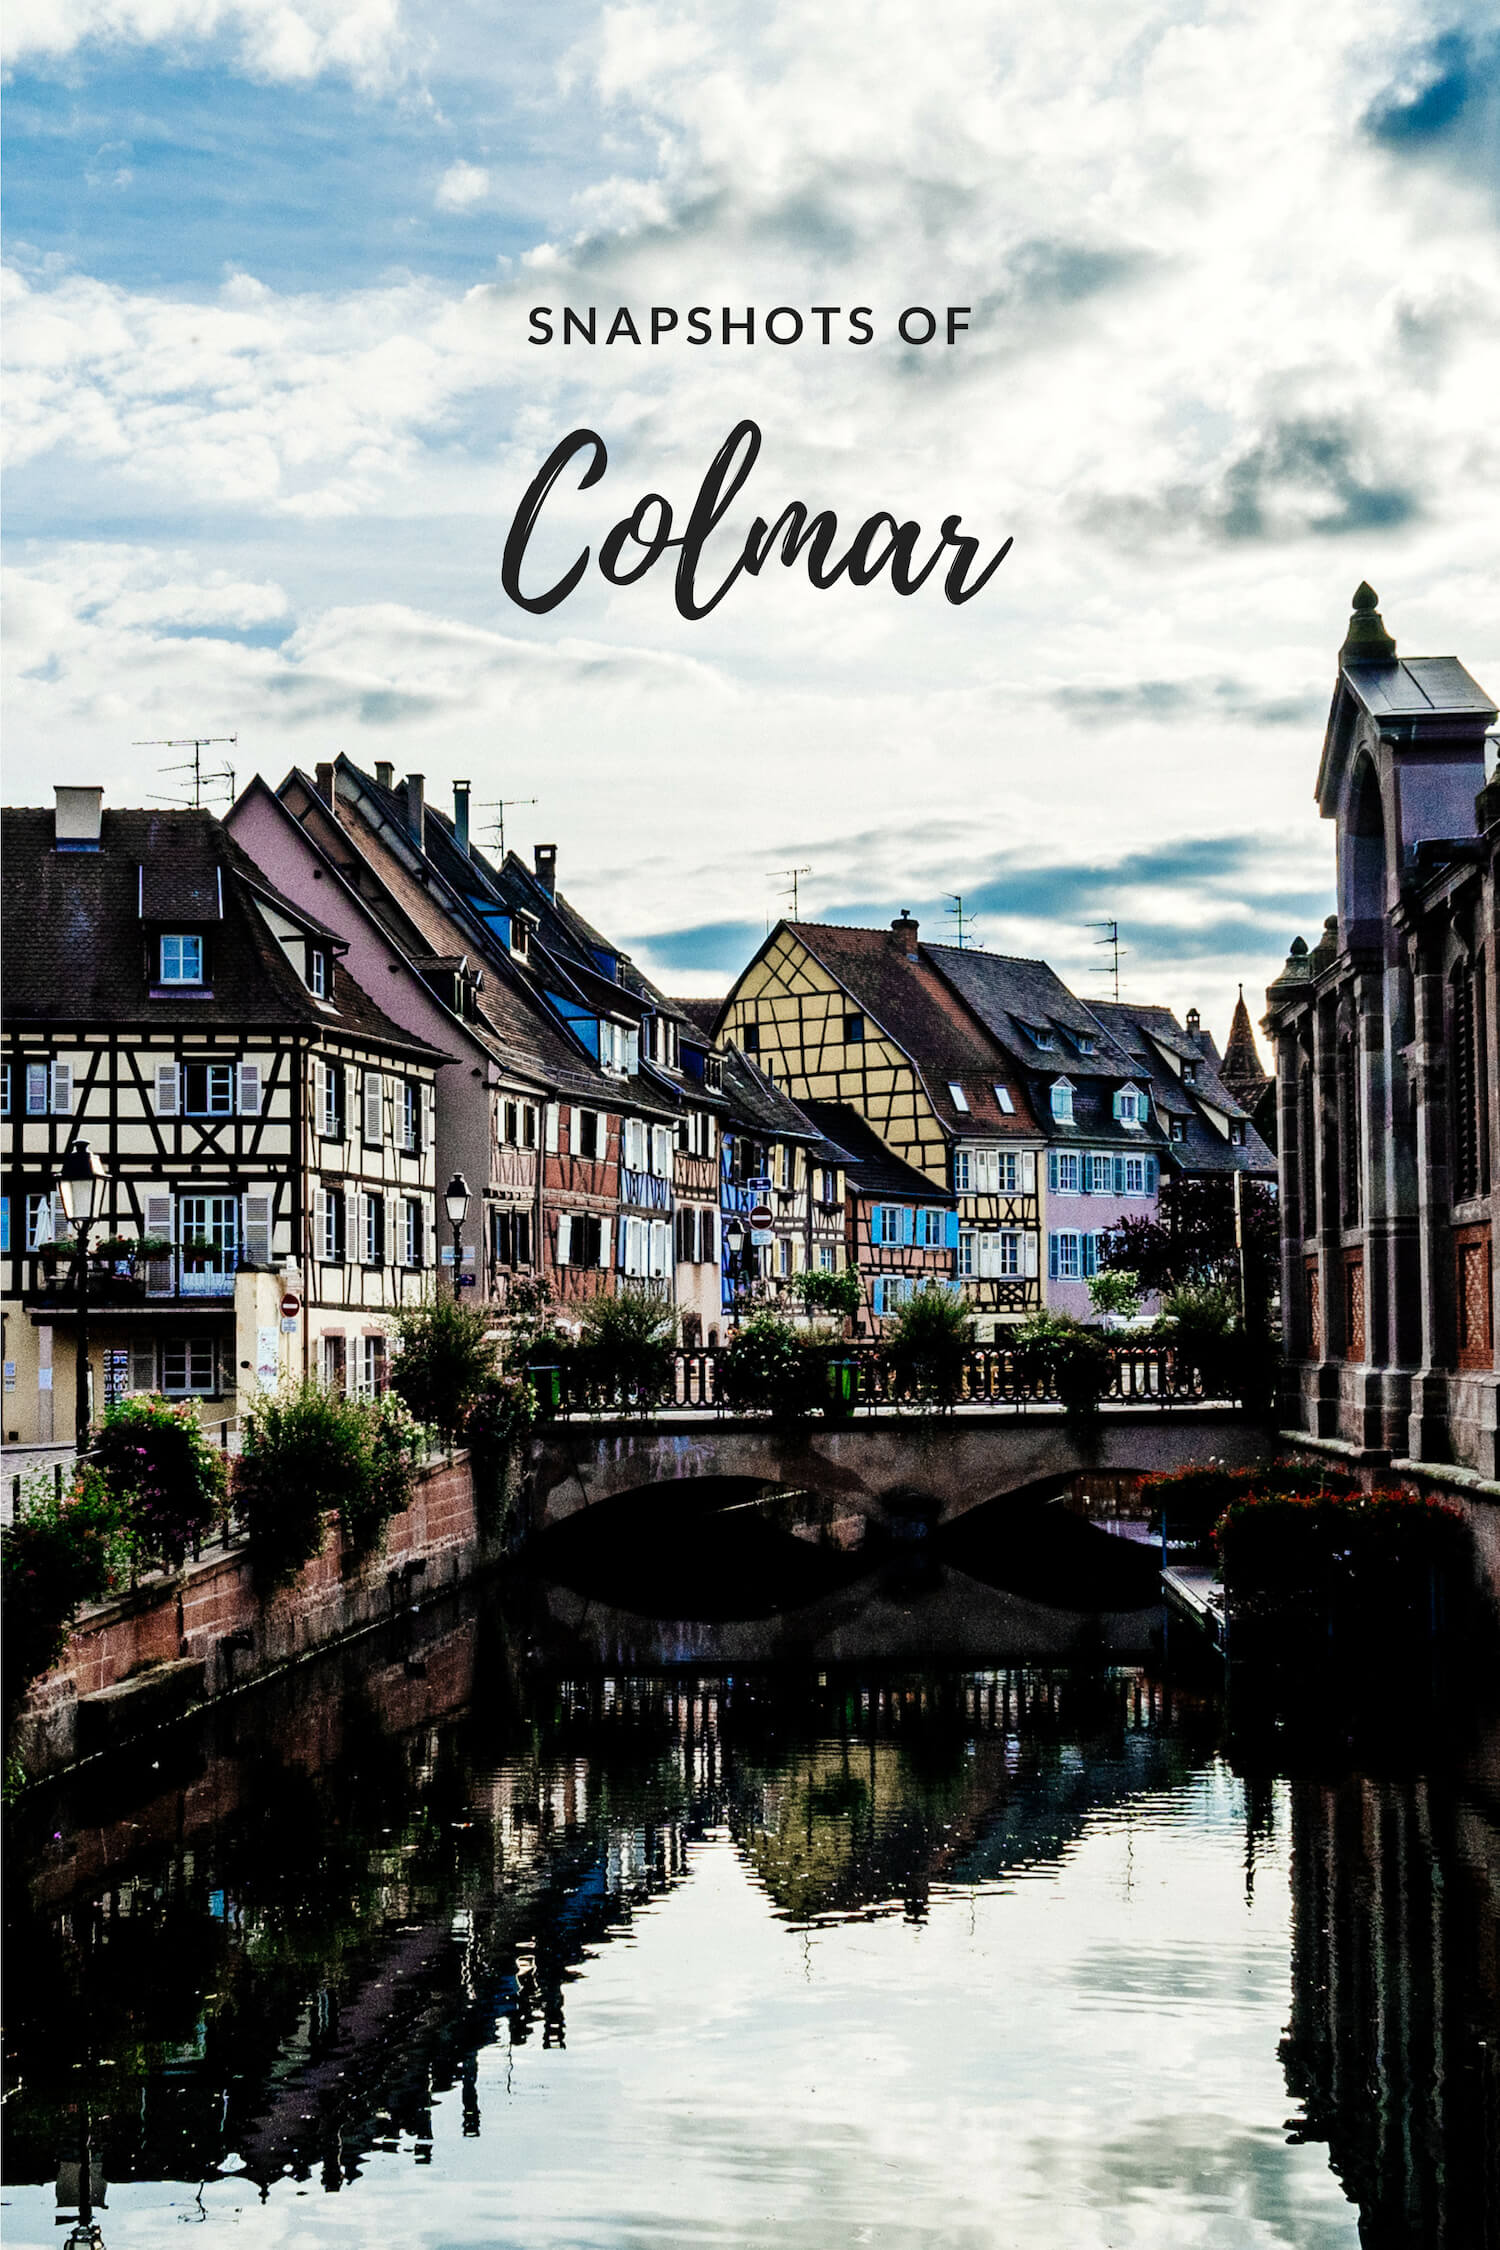 Snapshots of Colmar France